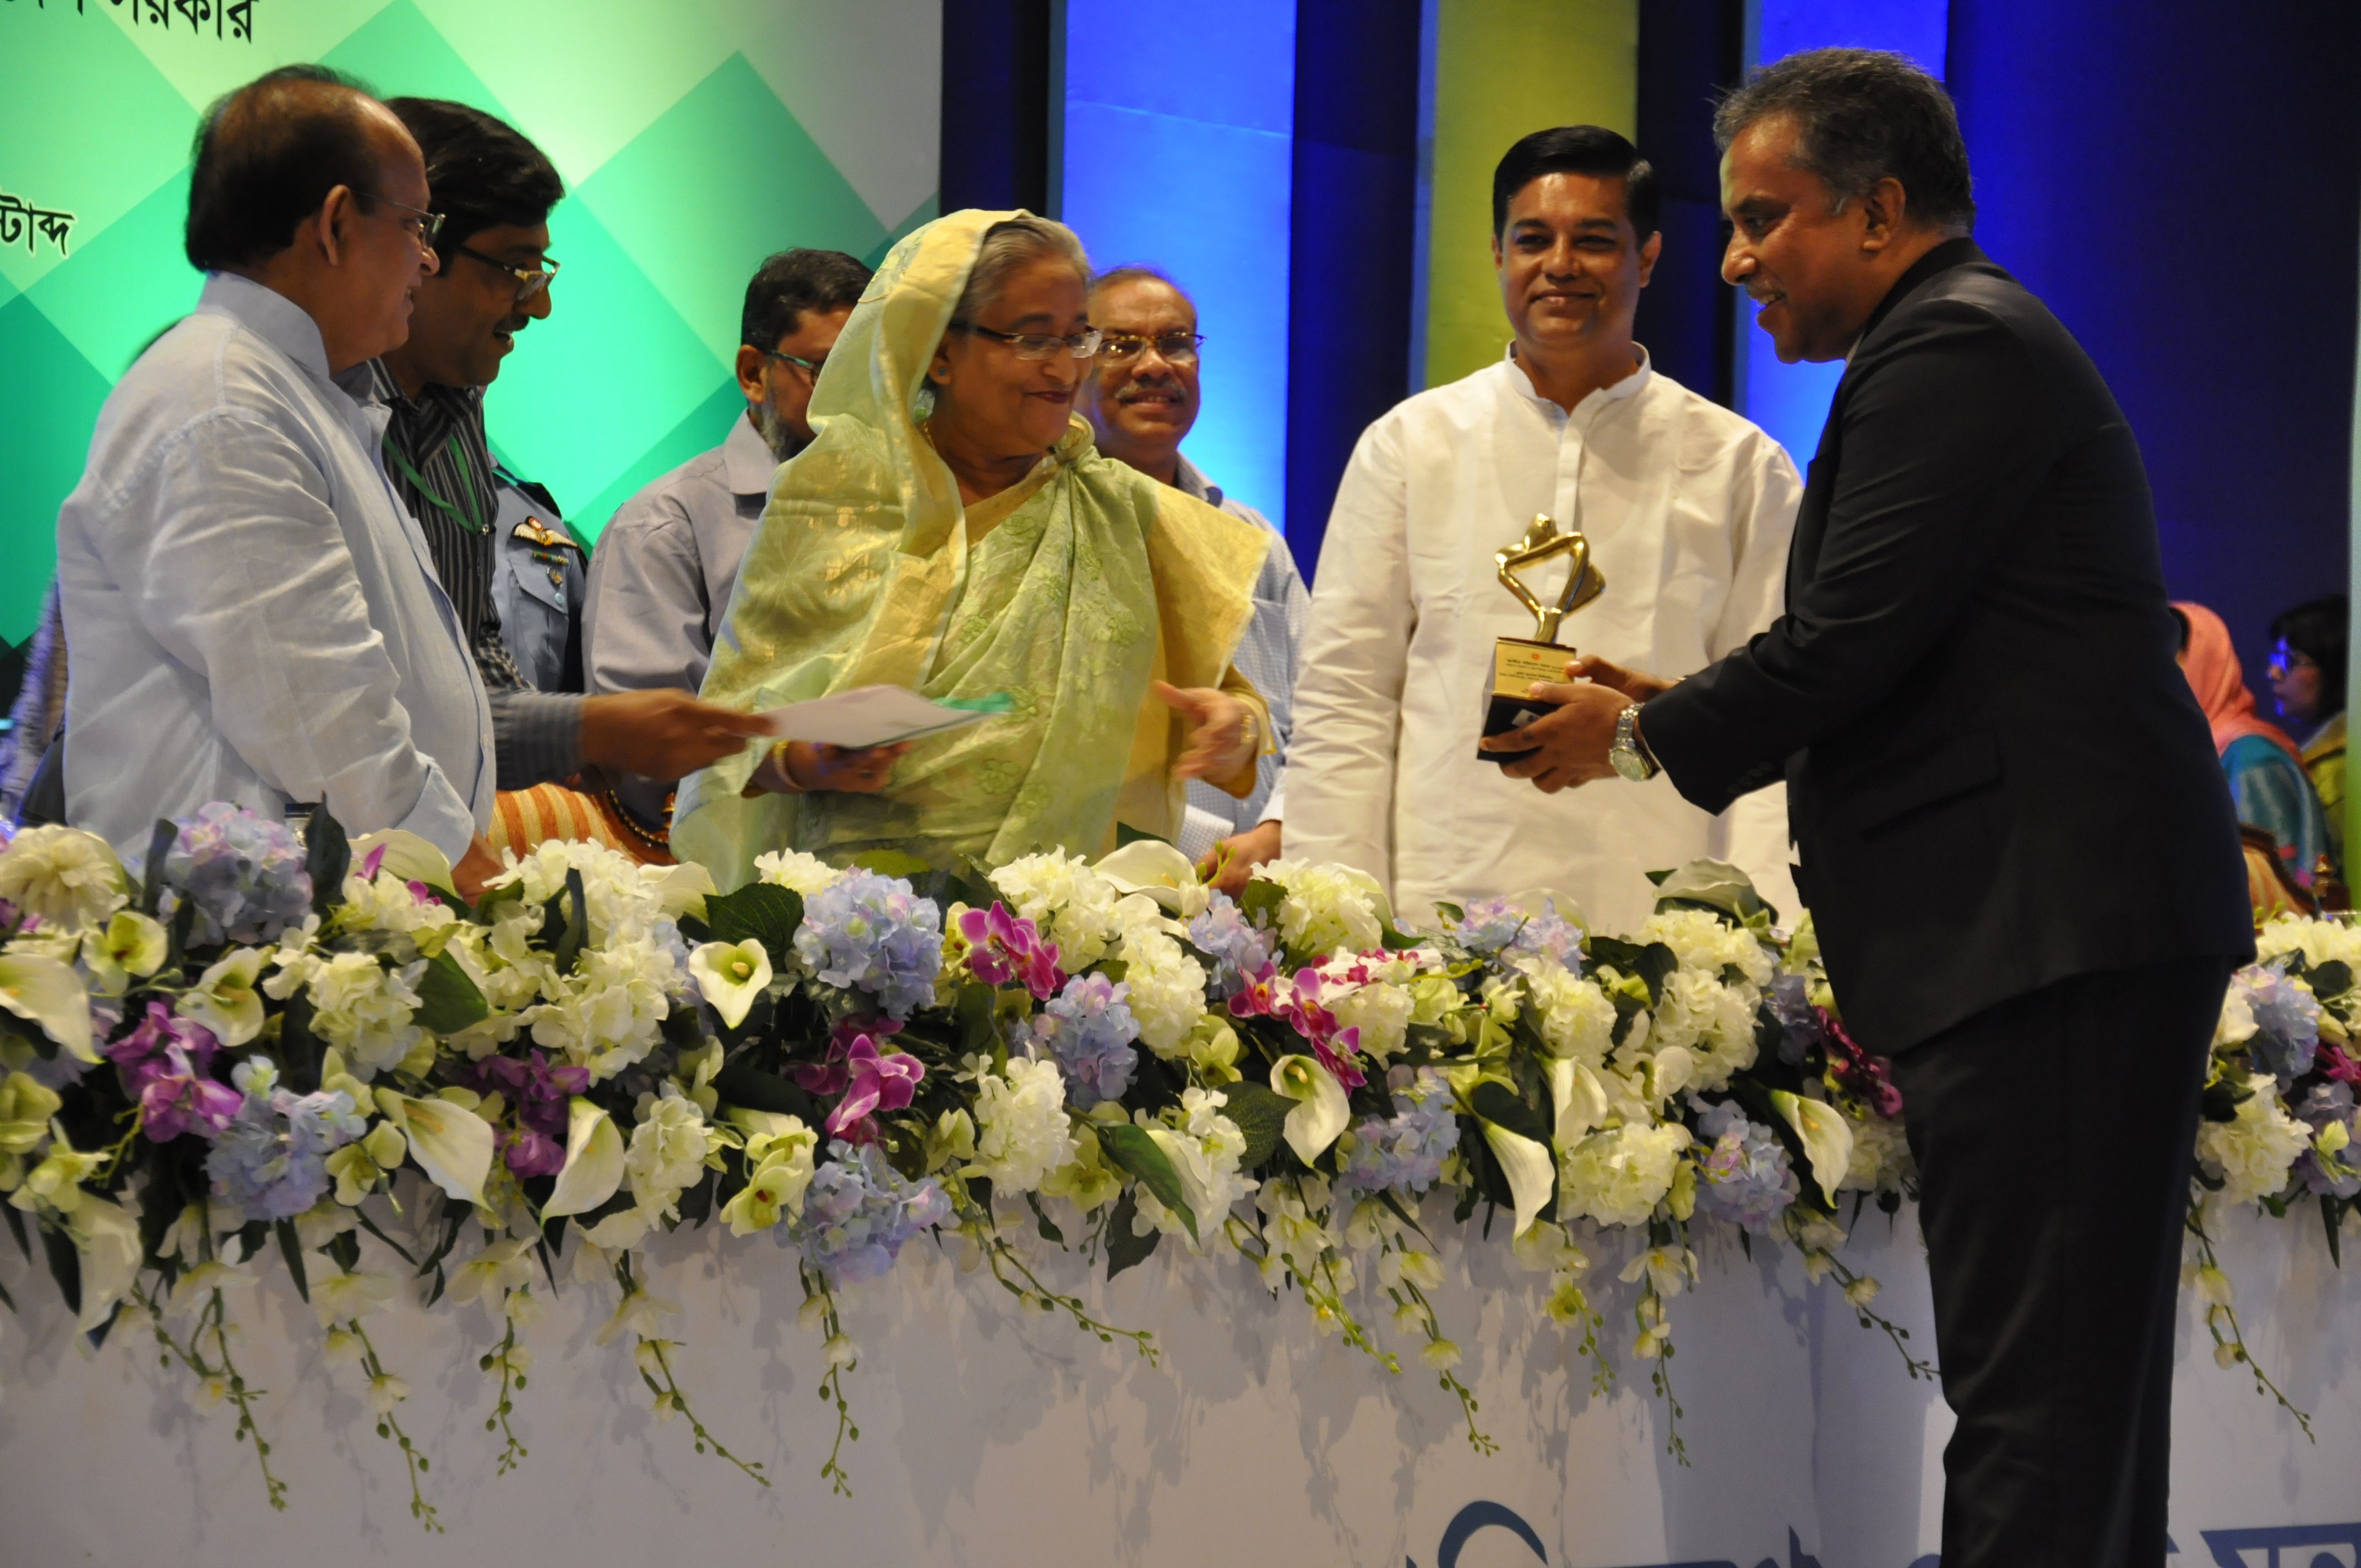 Mr. Md. Fazlul Hoque is receiving National Award on Environments 2016 from Prime Minister Sheikh Hasina